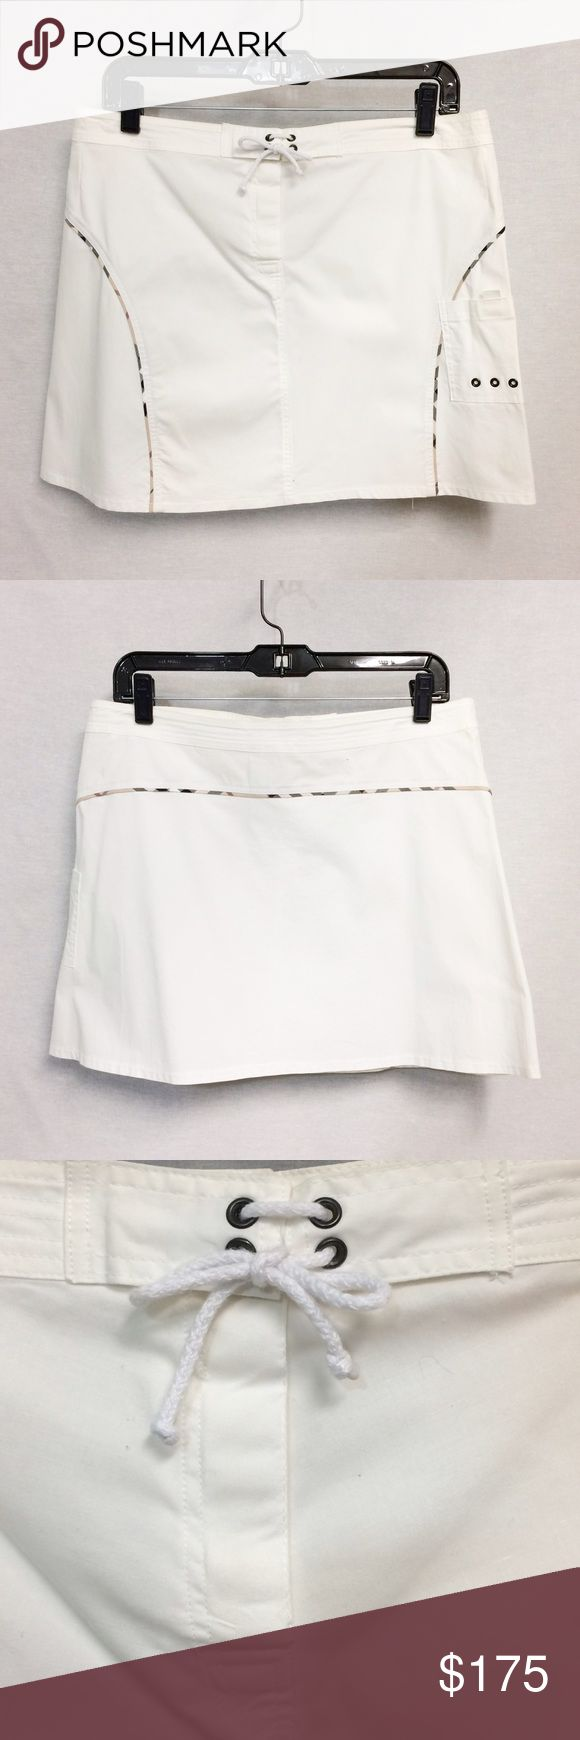 """Burberry Cargo Skirt Crisp, white, cargo skirt from Burberry! Features small cargo pocket on side, classic Burberry plaid at seams, hidden button closure, with tie-front accent. 16.5"""" waist, 15.5"""" length (when flat). Cotton with 3% spandex for stretch. Very good, used condition. Pair with flats and cotton tee for an easy spring look! Burberry Skirts"""